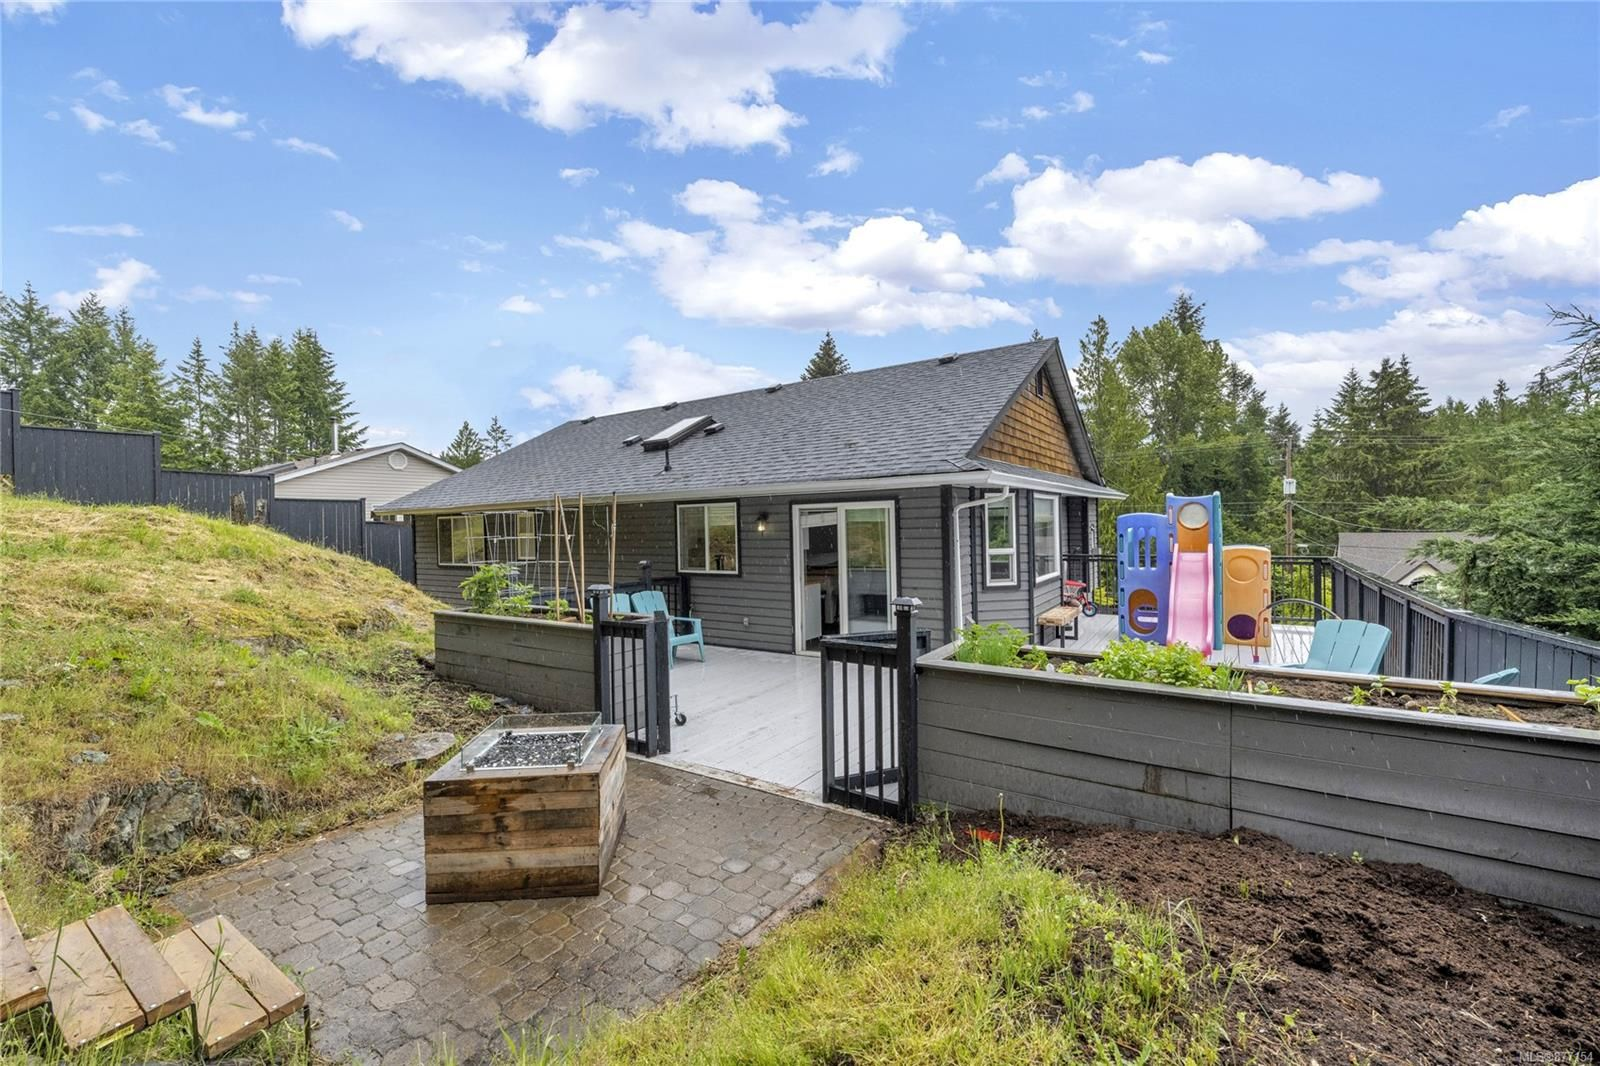 Photo 13: Photos: 2376 Terrace Rd in : ML Shawnigan House for sale (Malahat & Area)  : MLS®# 877154